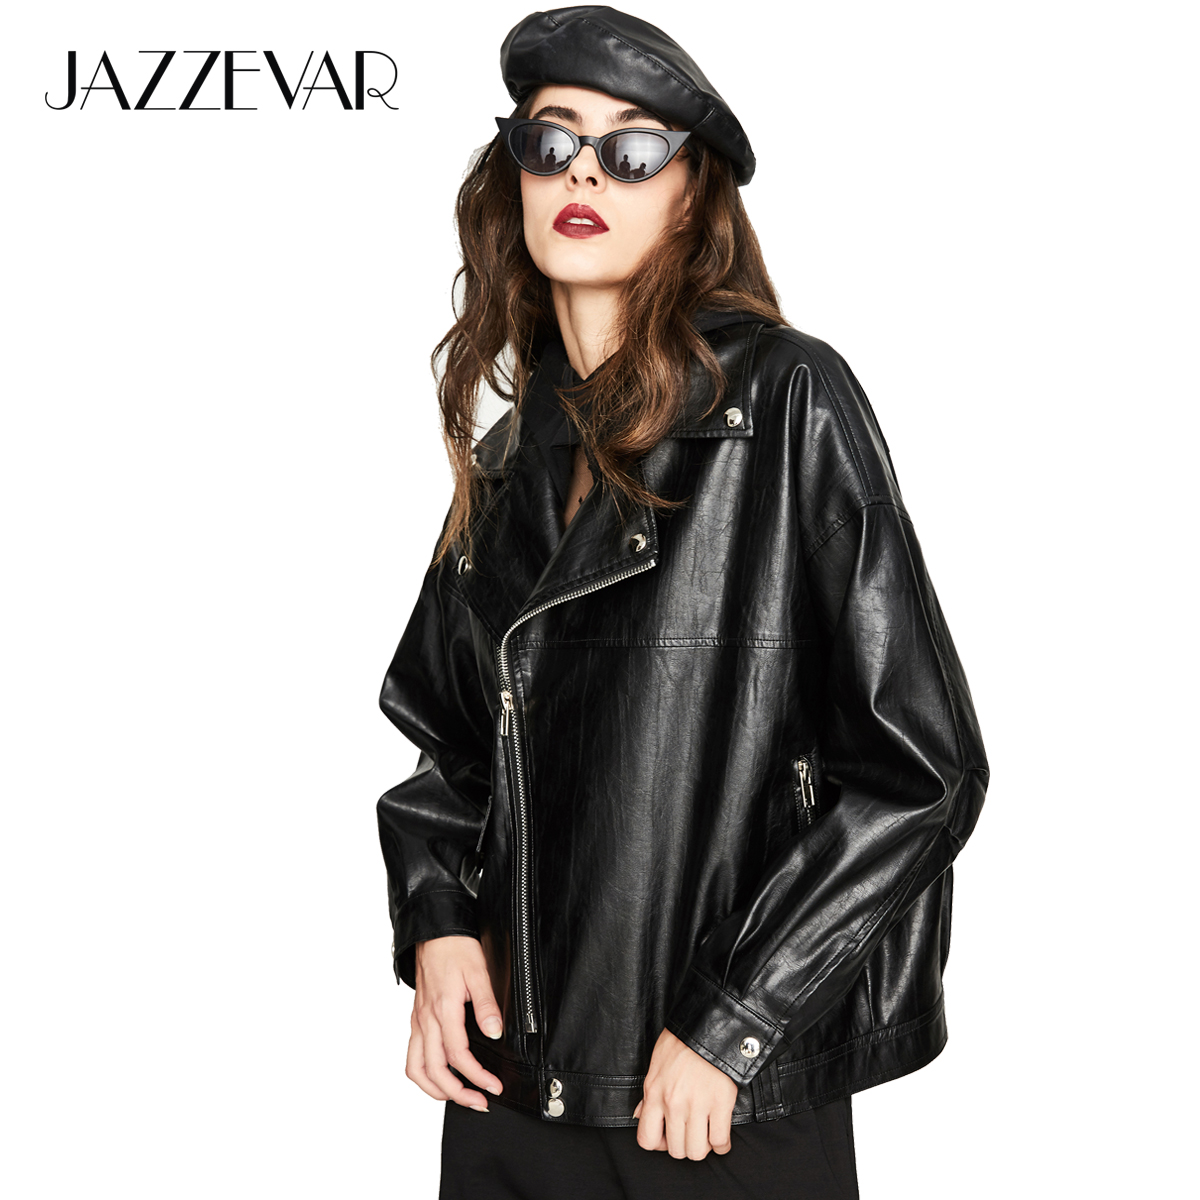 JAZZEVAR 2019 New Autumn High Fashion Street Women s Washed PU Leather Jacket Short oversized Zipper